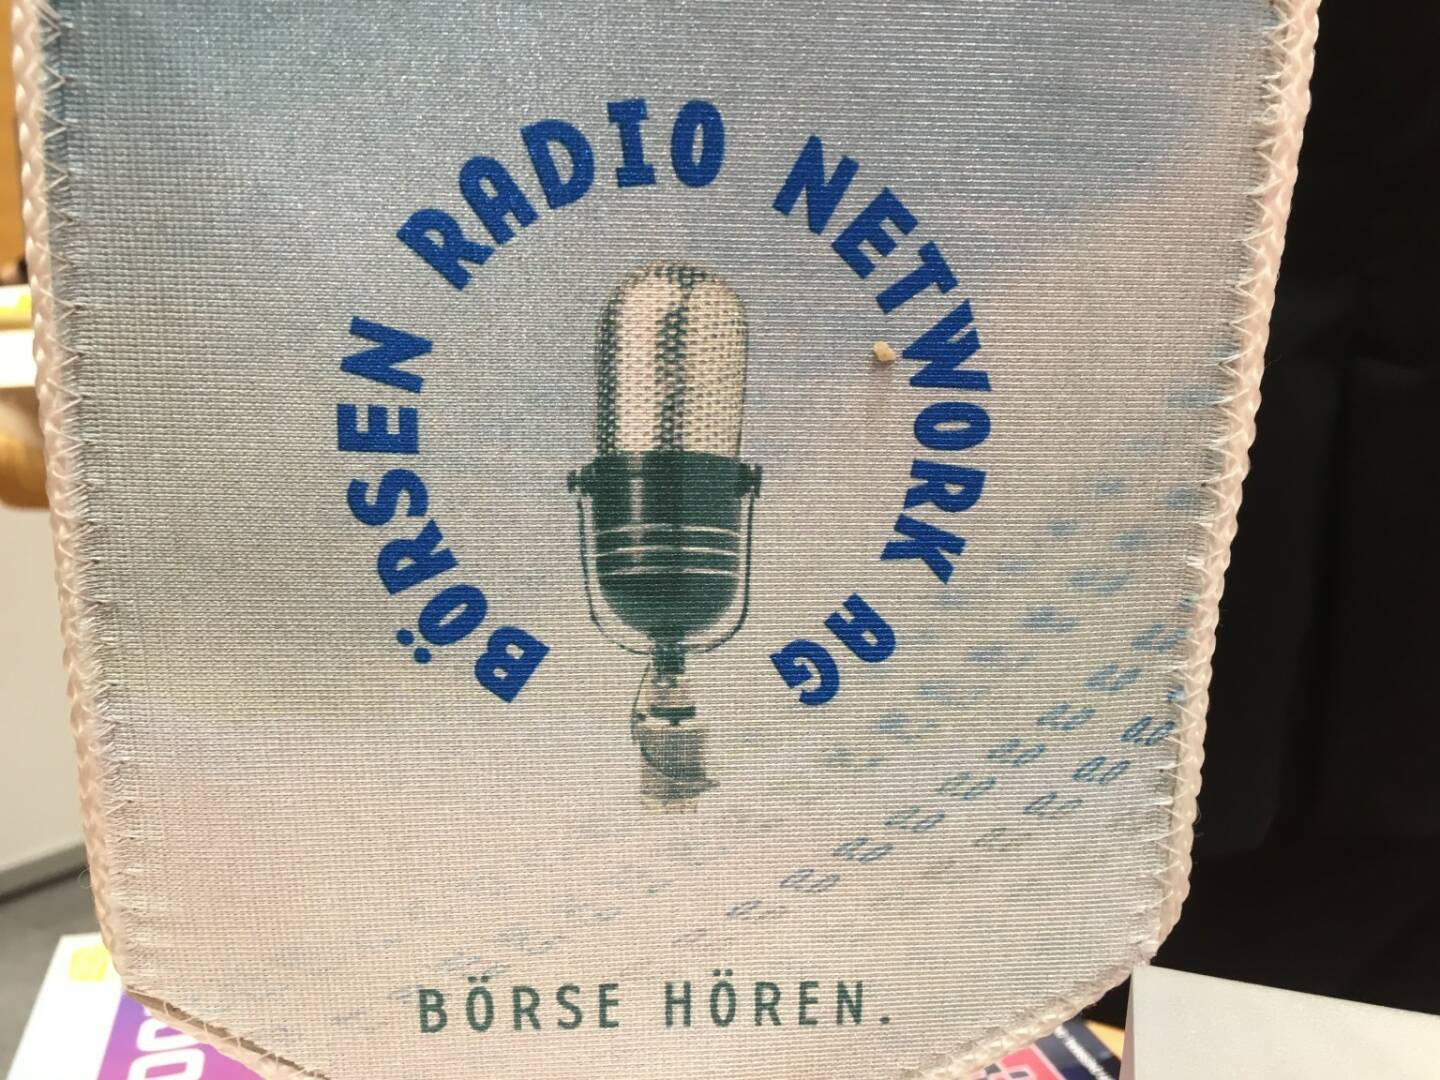 Borsenradio At Borsen Radio Network Ag Brn Bild 68326 Deals Dinge Logos Q4 2017